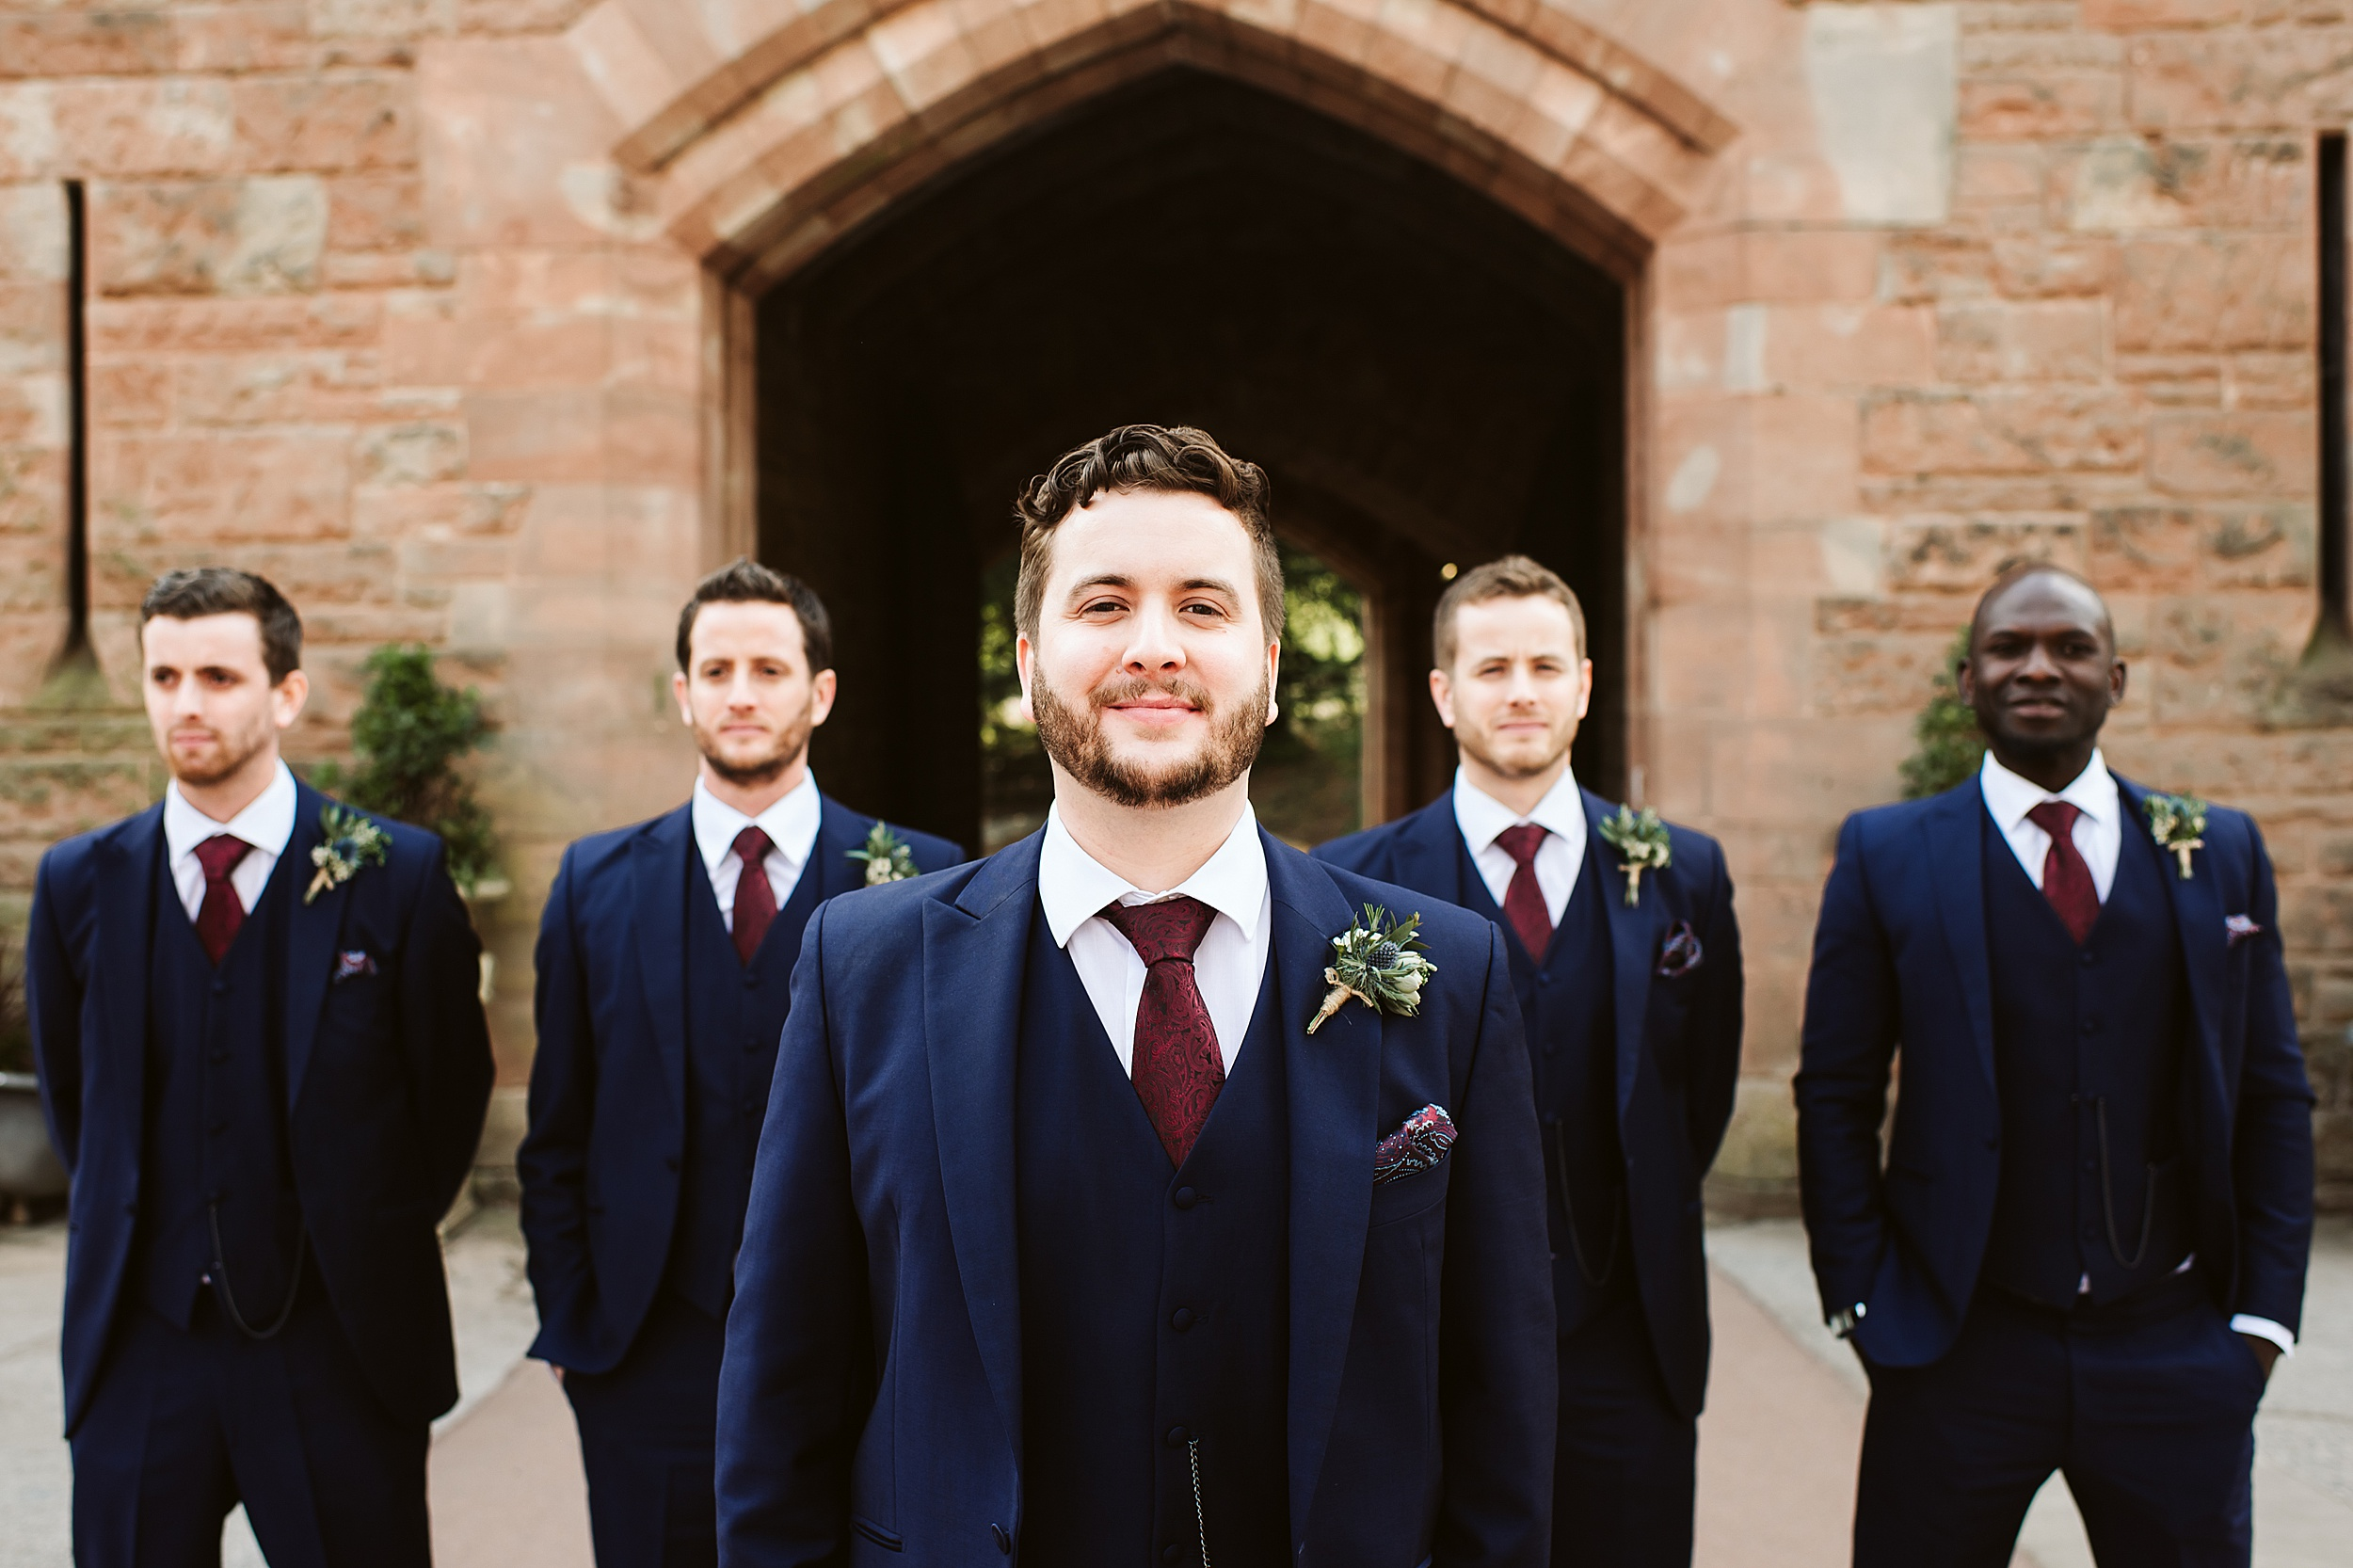 Peckforton_Castle_Cheshire_Toronto_Wedding_Photographer_UK_Destination_Wedding_0065.jpg